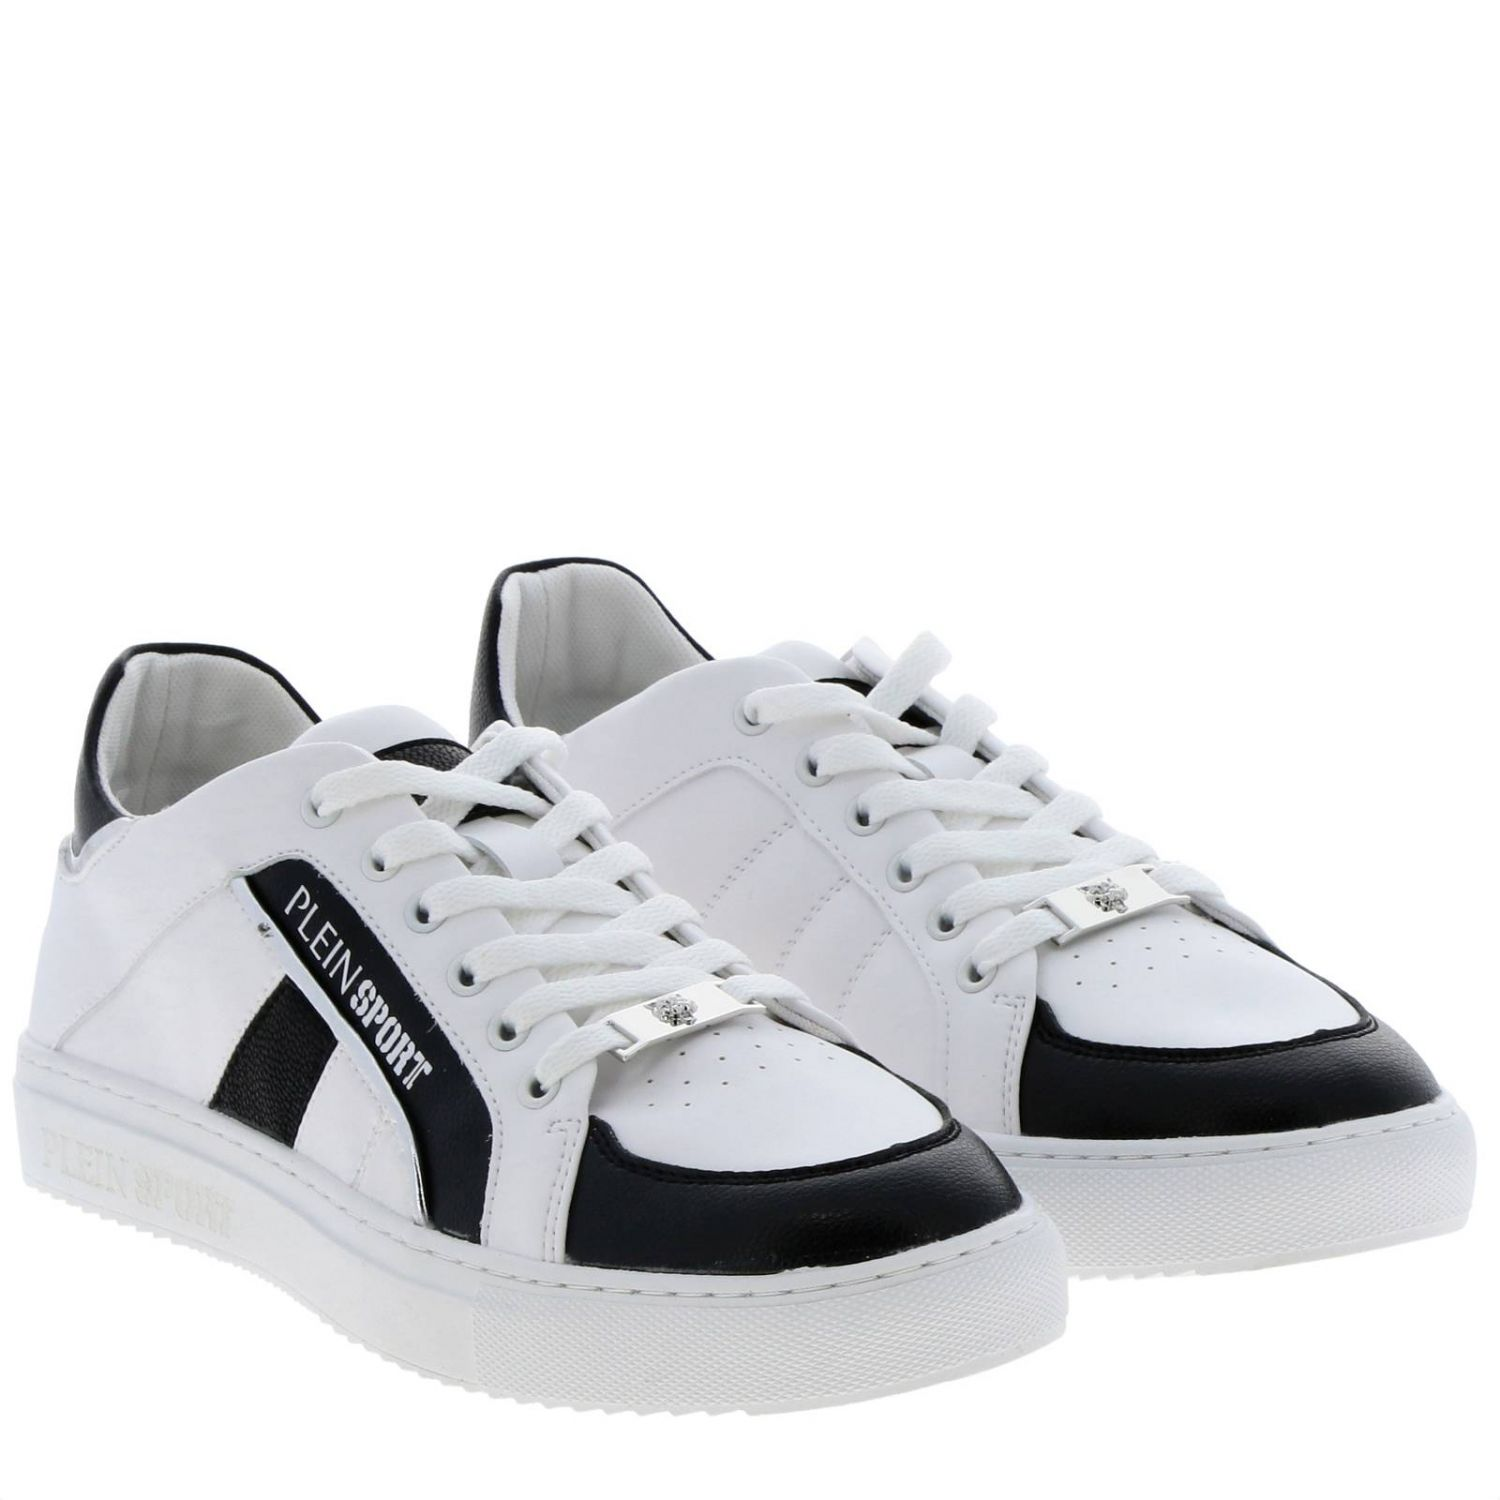 Lo-top Sneakers Cross Tiger Plein Sport in bicolor leather with logo white 2